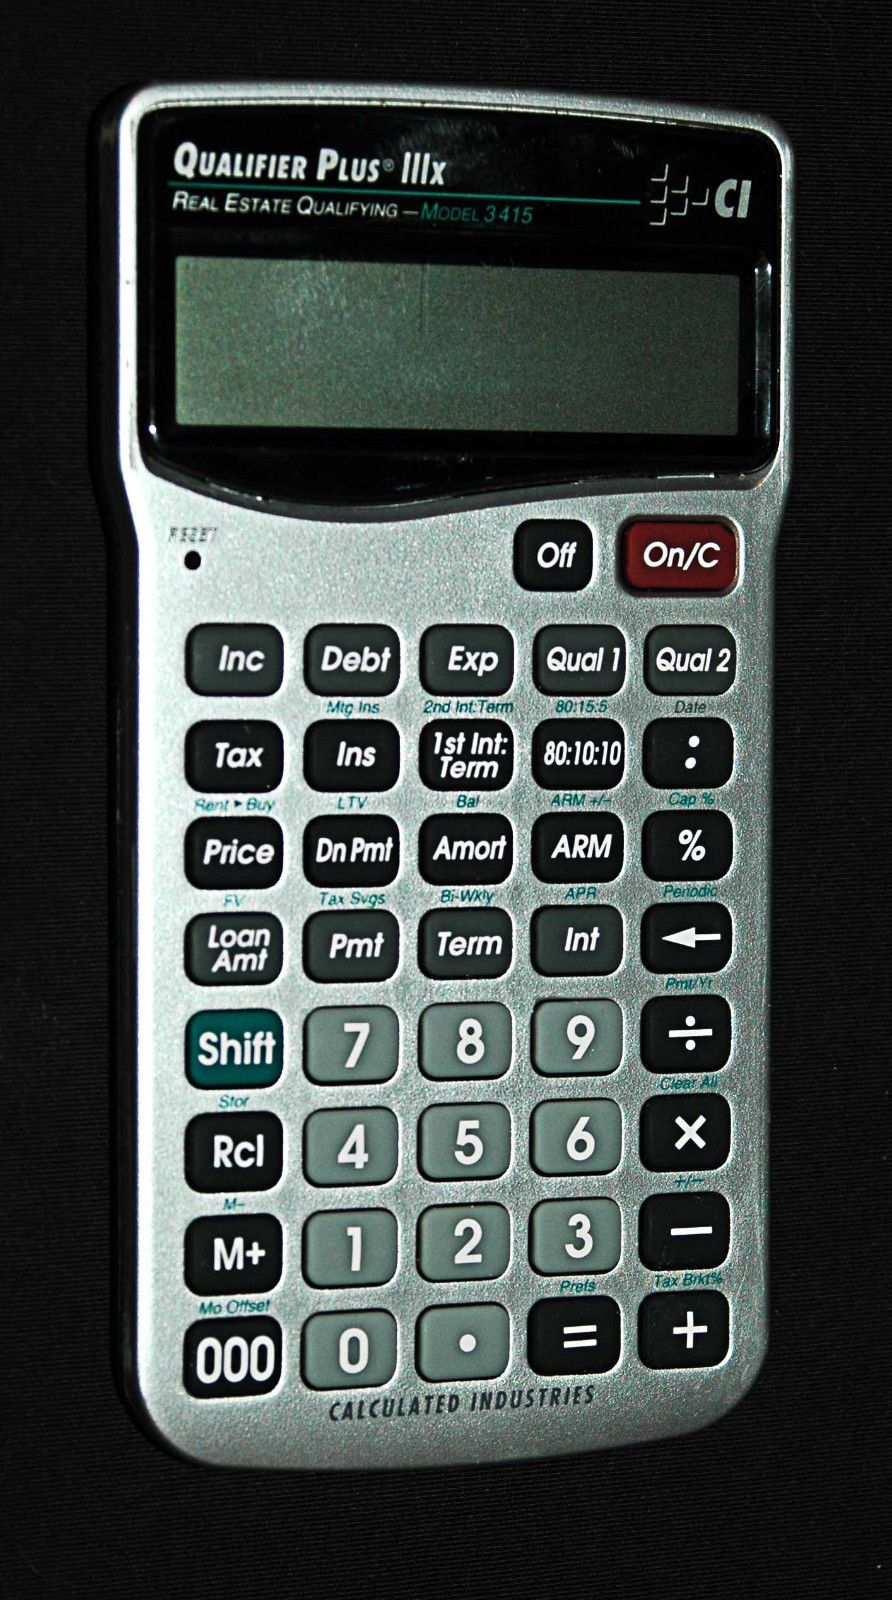 Calculated Industries 3415 Qualifier Plus Real Estate Calculator lllx New